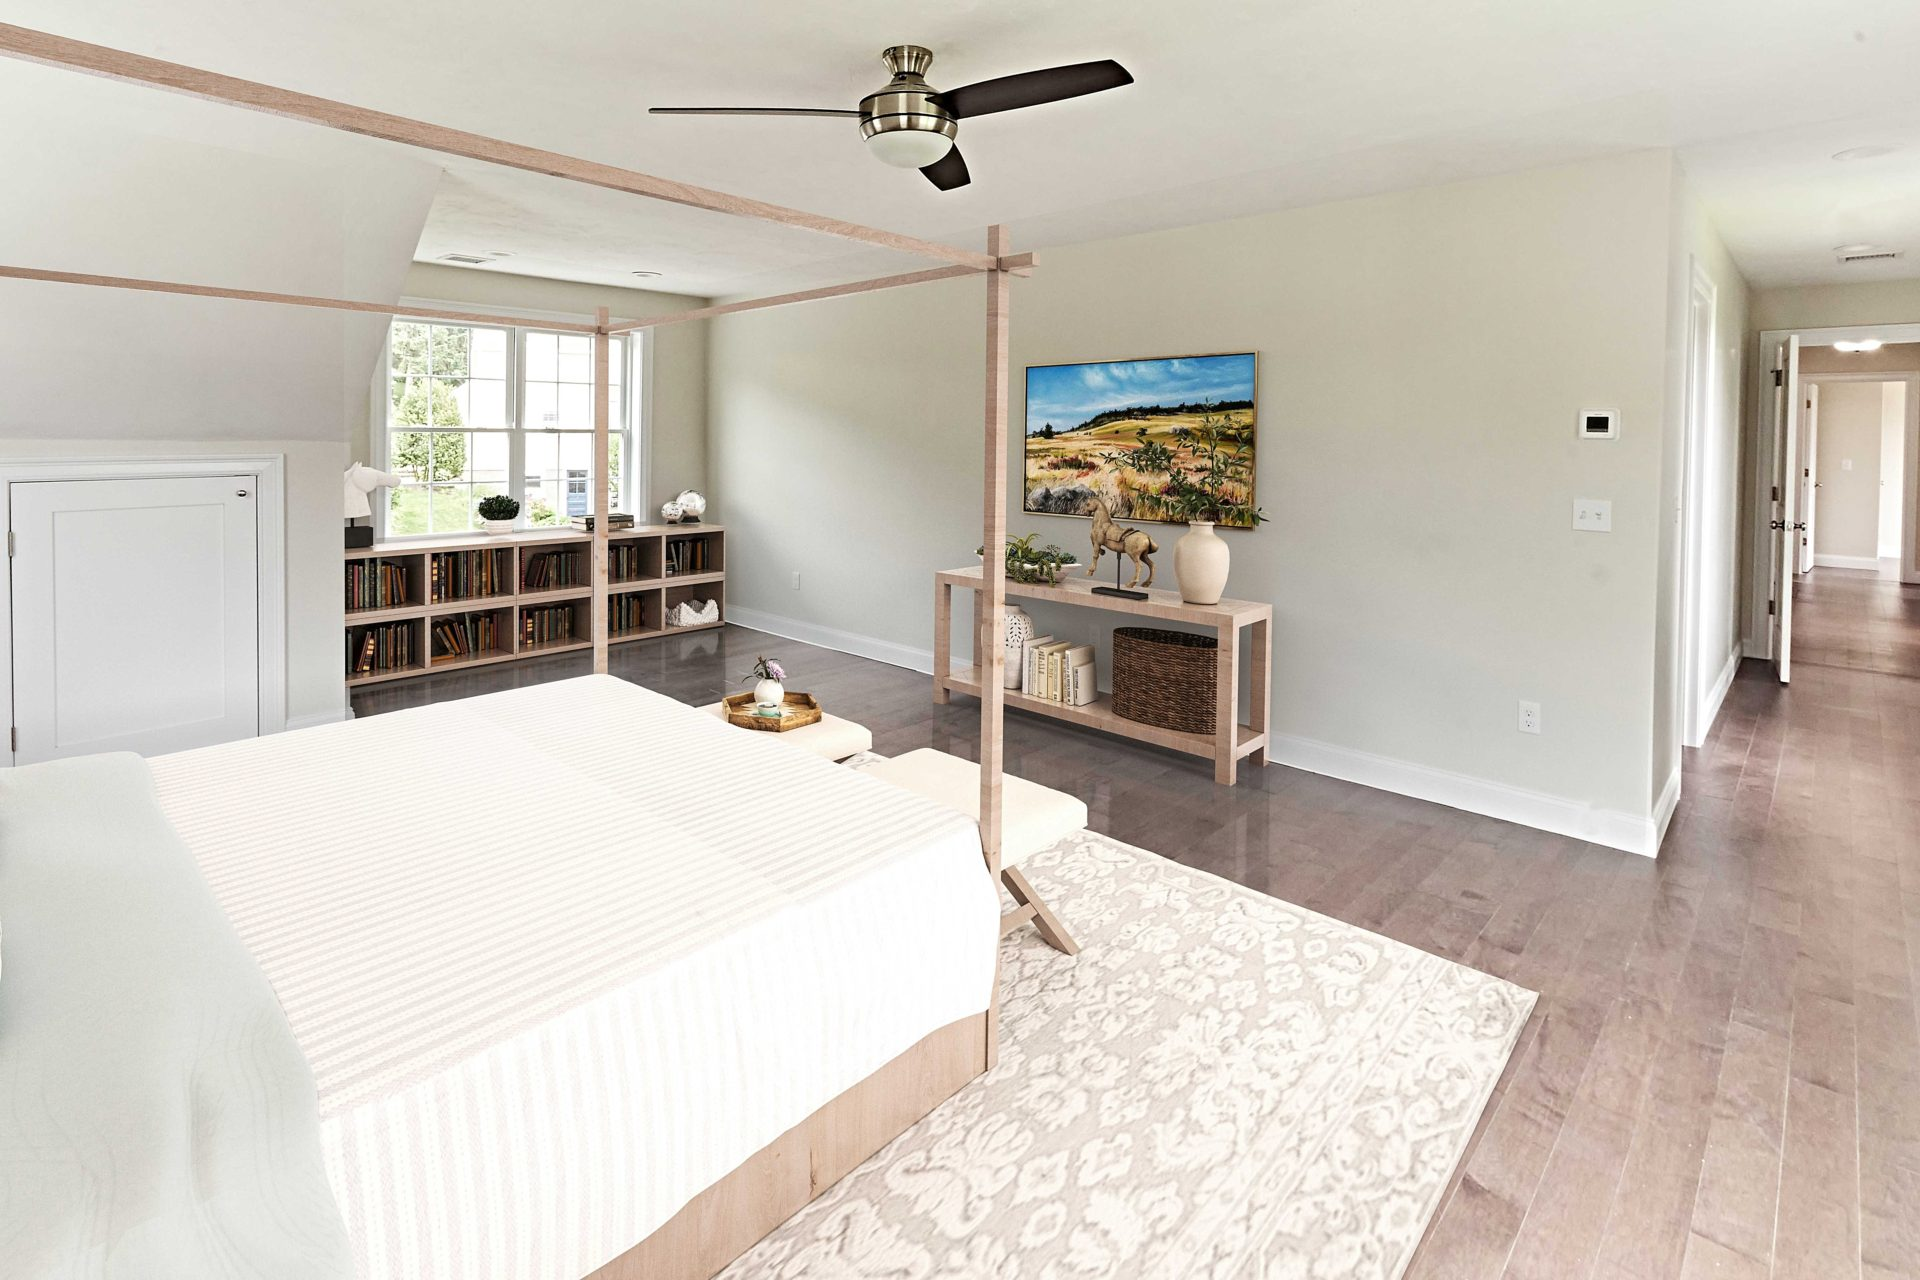 Virtually staged primary bedroom in a 3-story colonial style home in Marshfield, MA.